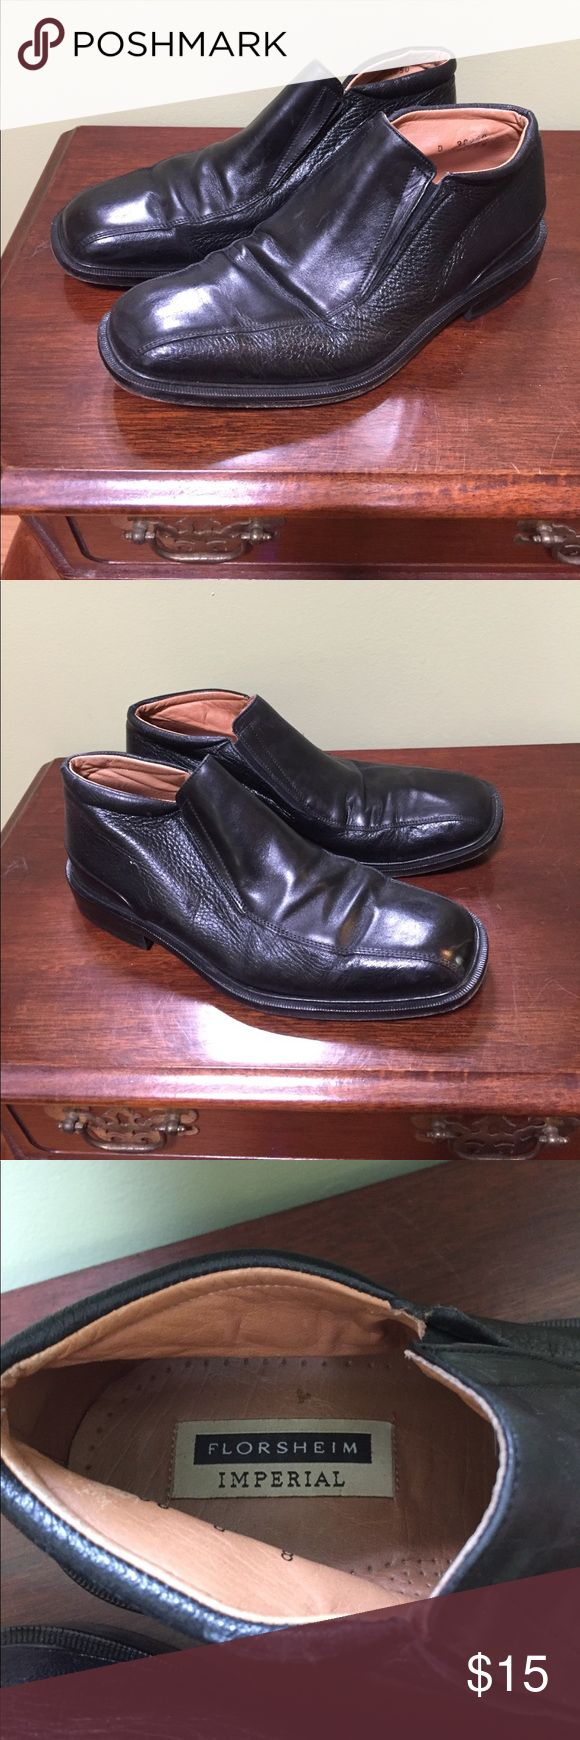 Florsheim imperial black leather men's shoes 8 Florsheim imperial black men's all leather loafers men's size 8 D- shows signs of use but still have life left - does not come w box - Florsheim Shoes Loafers & Slip-Ons